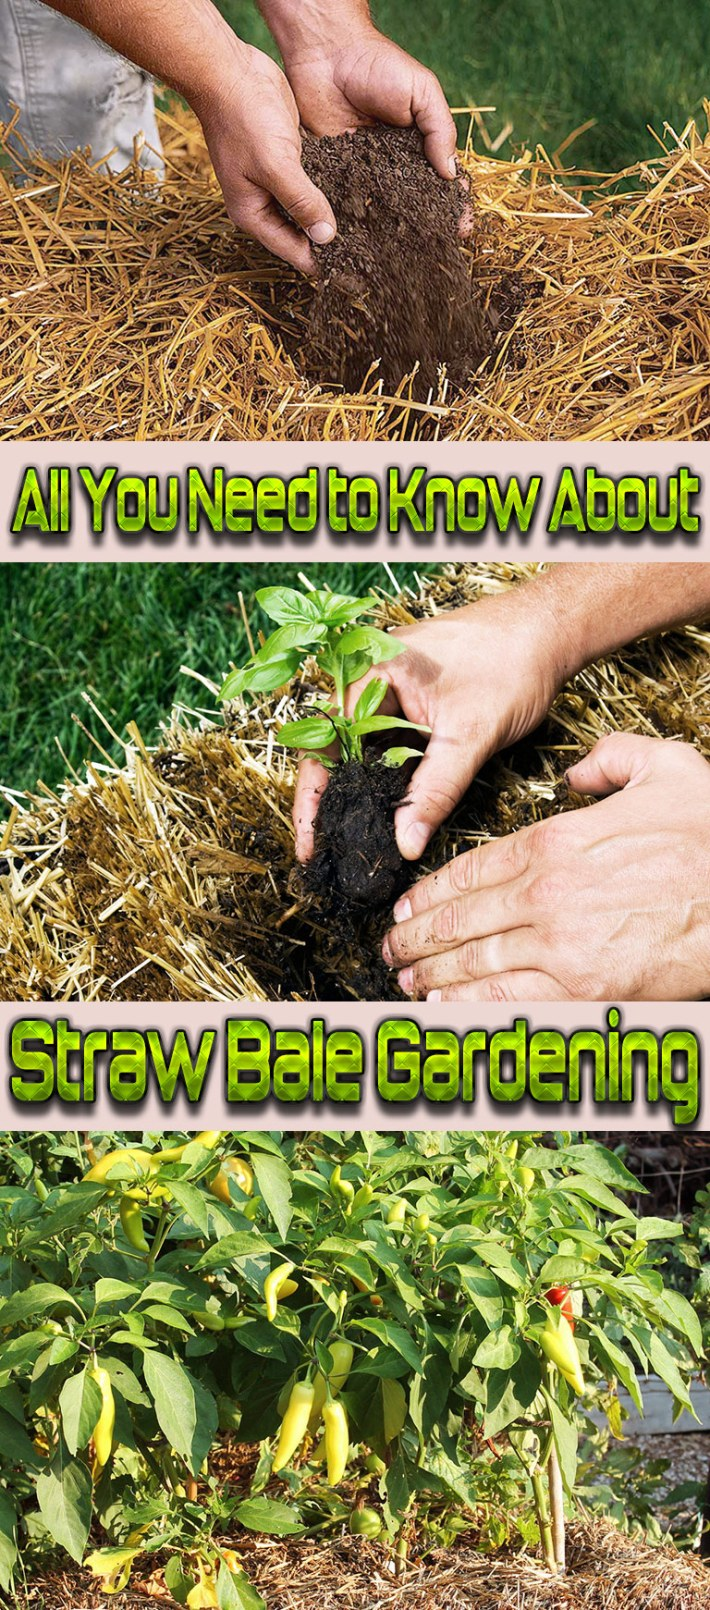 All You Need to Know About Straw Bale Gardening